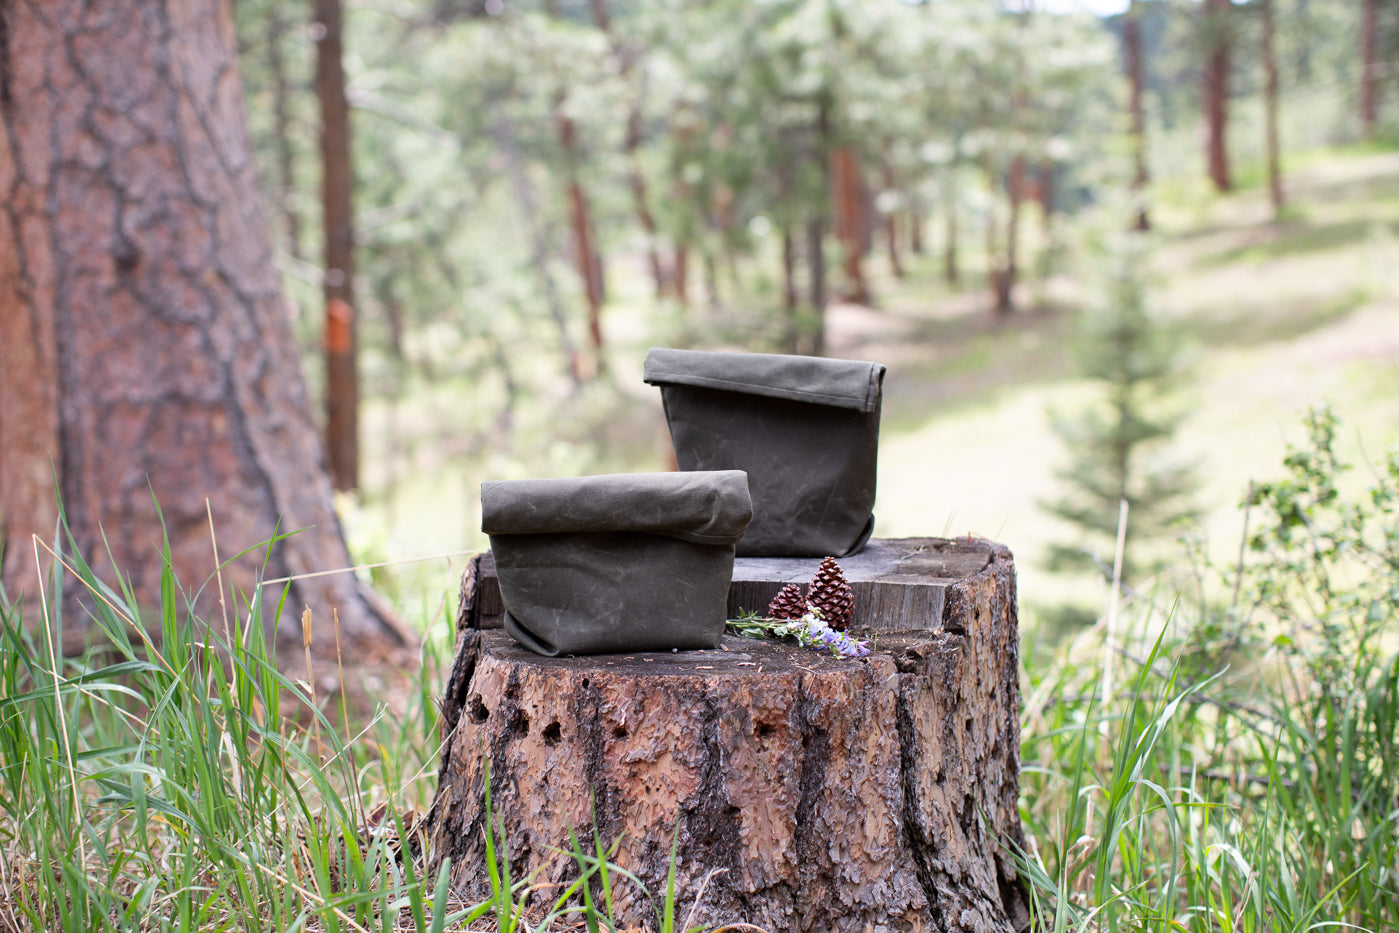 Two evergreen colored waxed canvas lunch sacks, sitting on a wood stump.  Background is forest, two pinecones, white and purple wildflowers are sitting on the wooden stump with the bag.